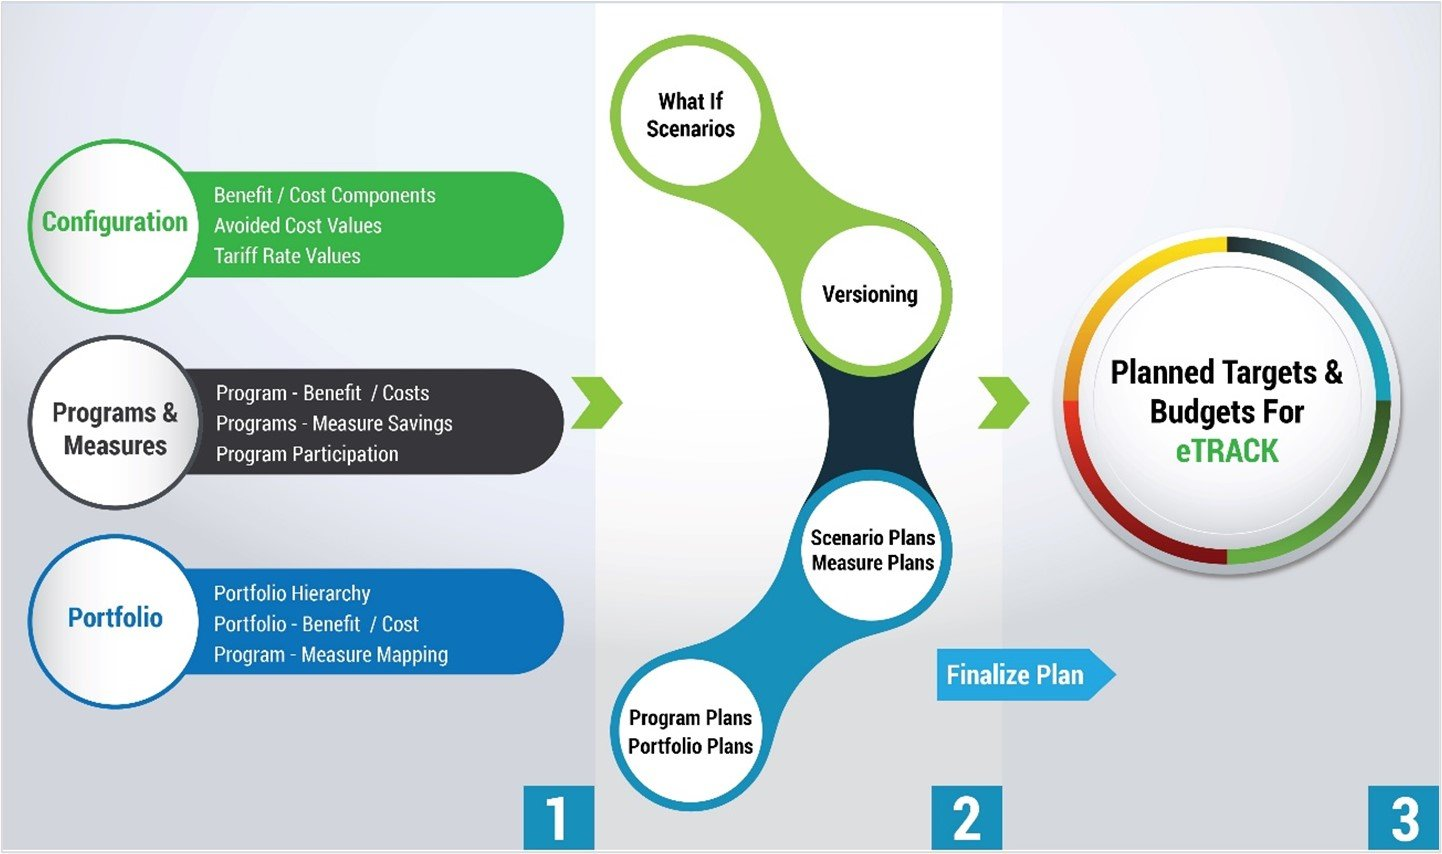 Steps to Configure Platform, Setup & Run Cost-Effectiveness Test, and Evaluate Results